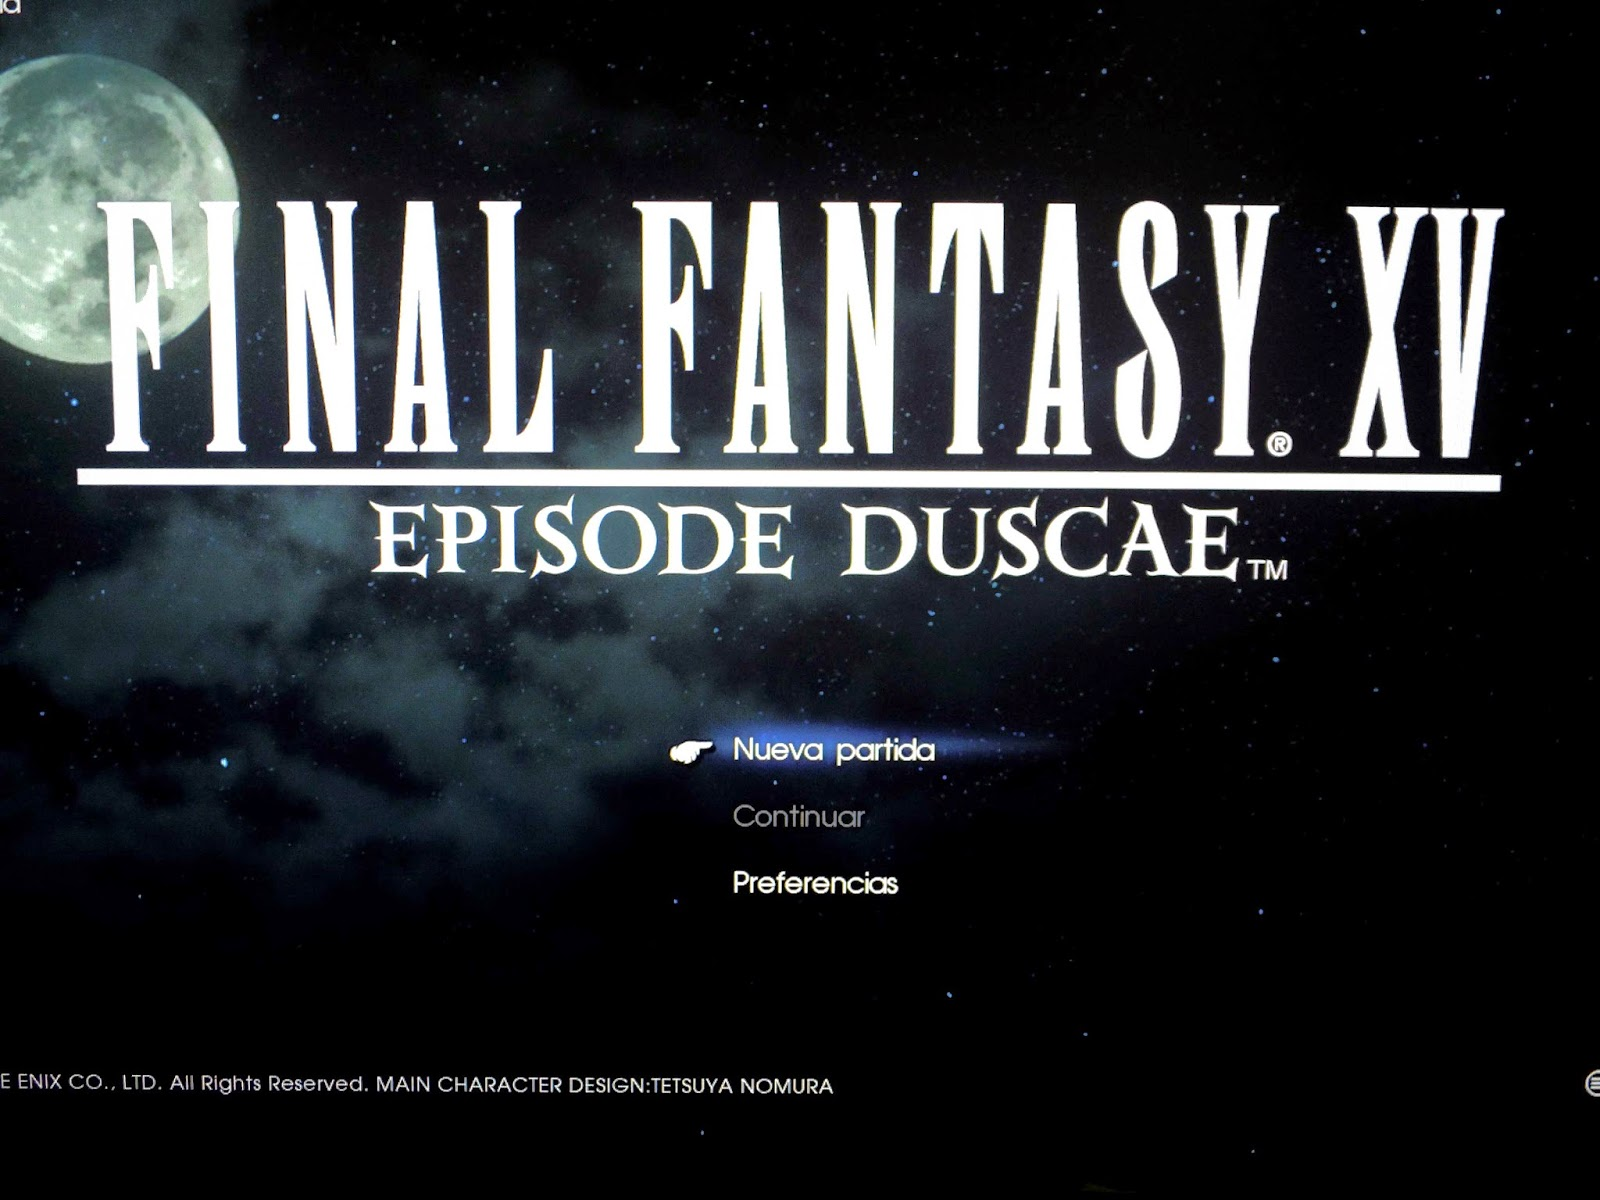 demo final fantasy xv episode duscae codigo